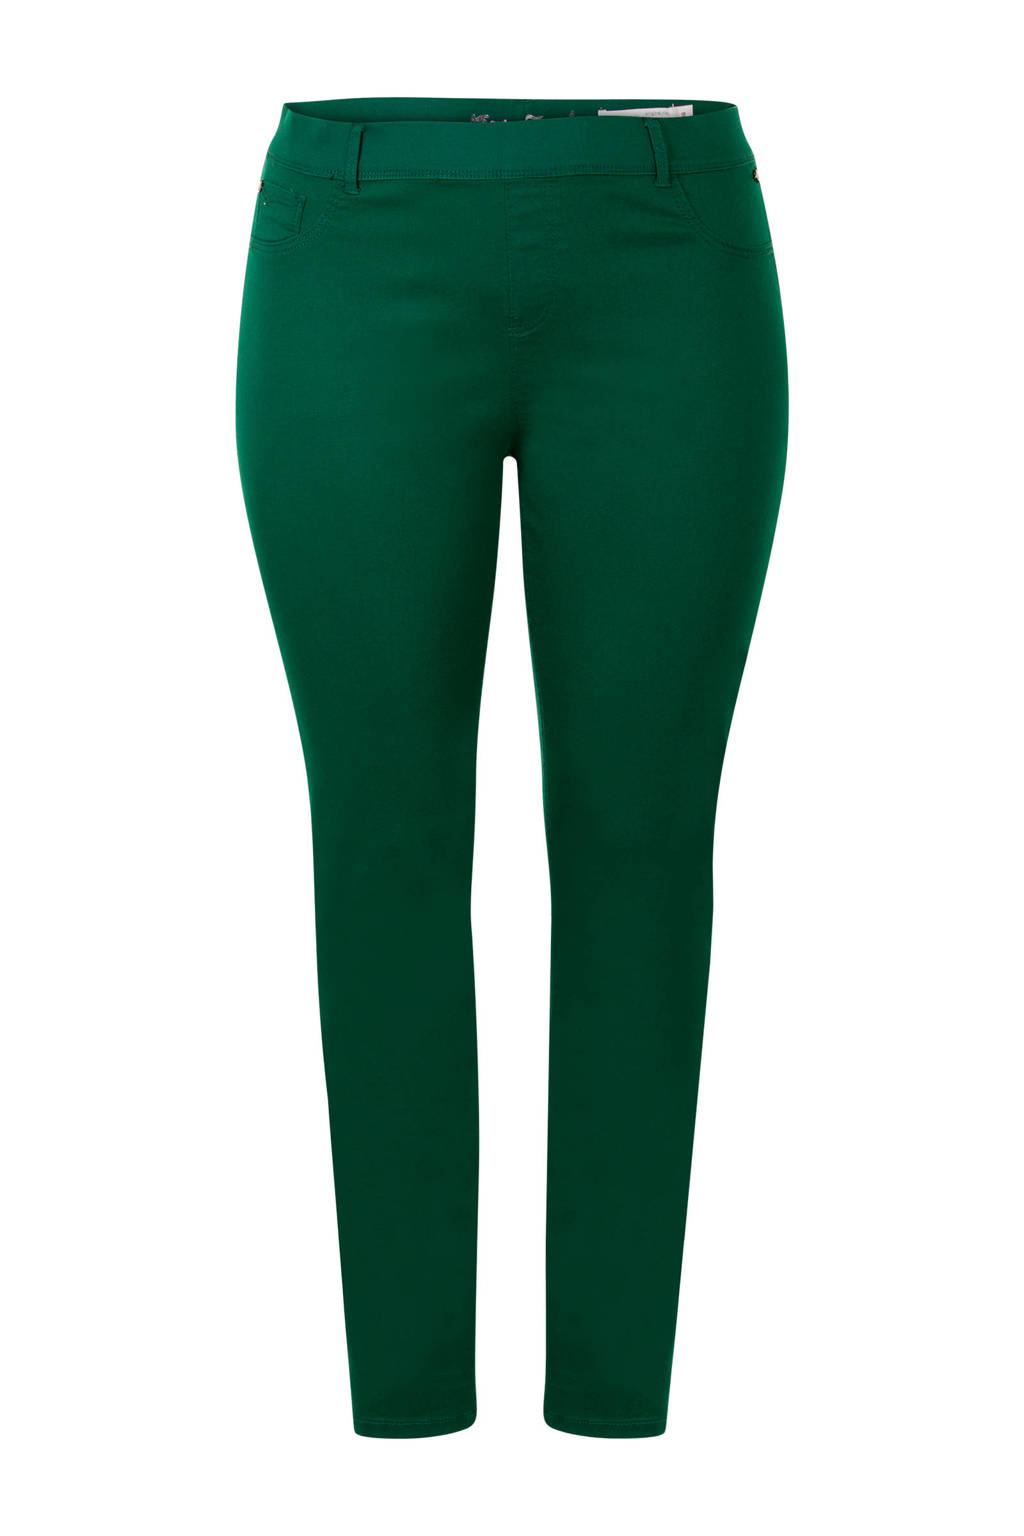 Miss Etam Plus slim fit tregging groen, Groen